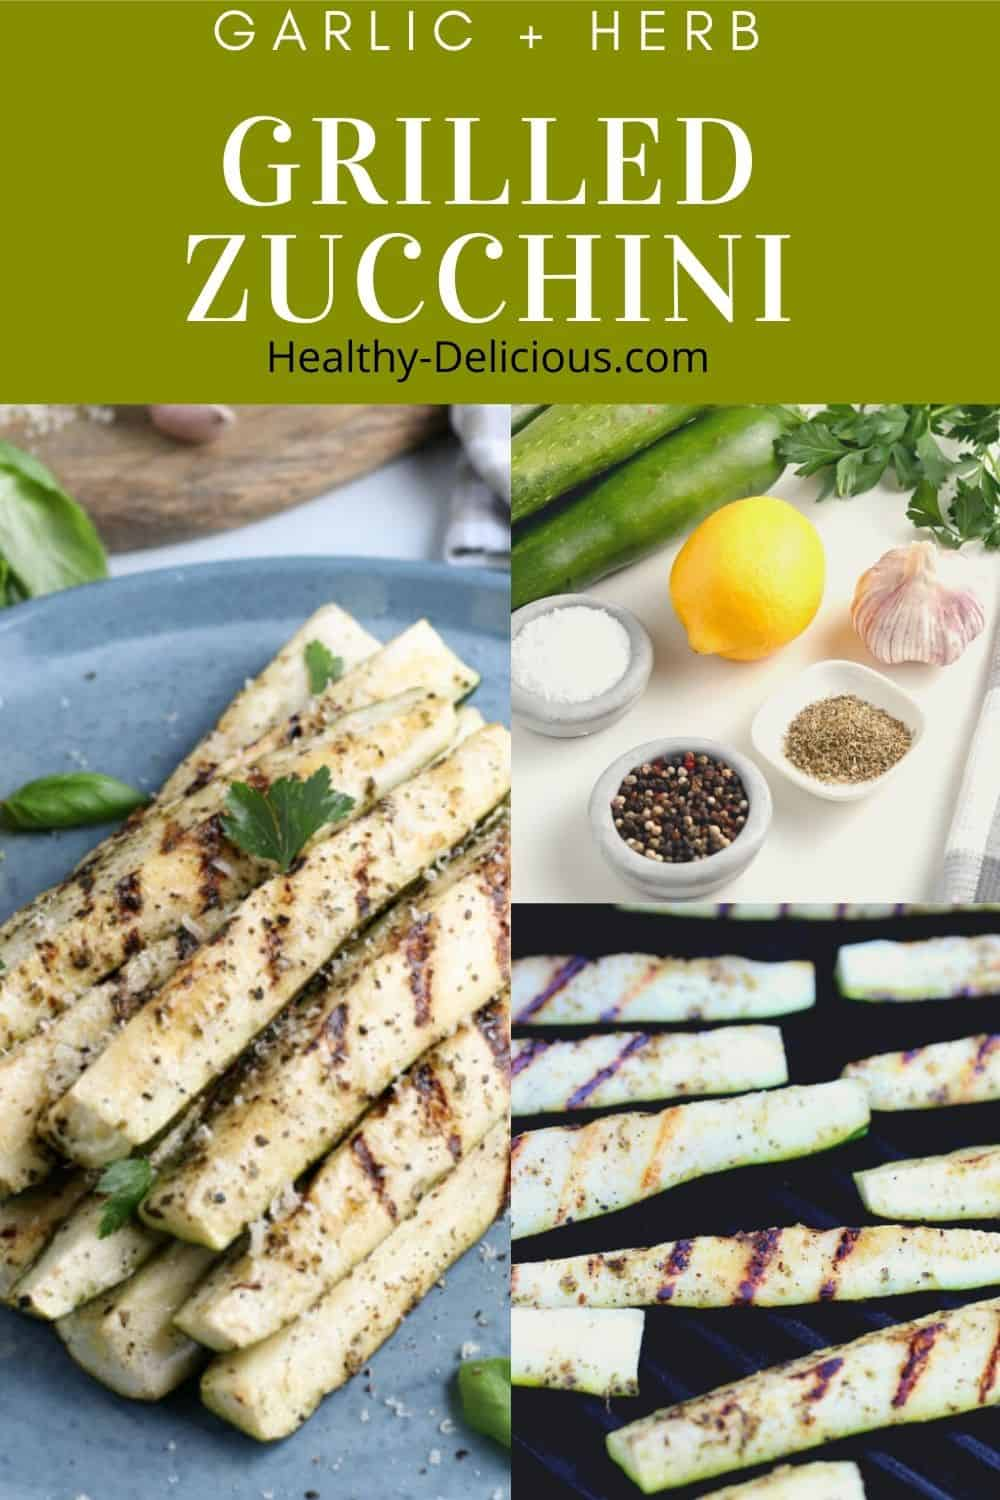 Zucchini makes an appearance on our table at least once a week this time of year. I love the texture that grilled zucchini has and its neutral flavor means it goes well with everything from chicken to burgers. This is my favorite recipe - plus tips for success! #grilling #vegetables #zucchini #lowcarb #keto via @HealthyDelish